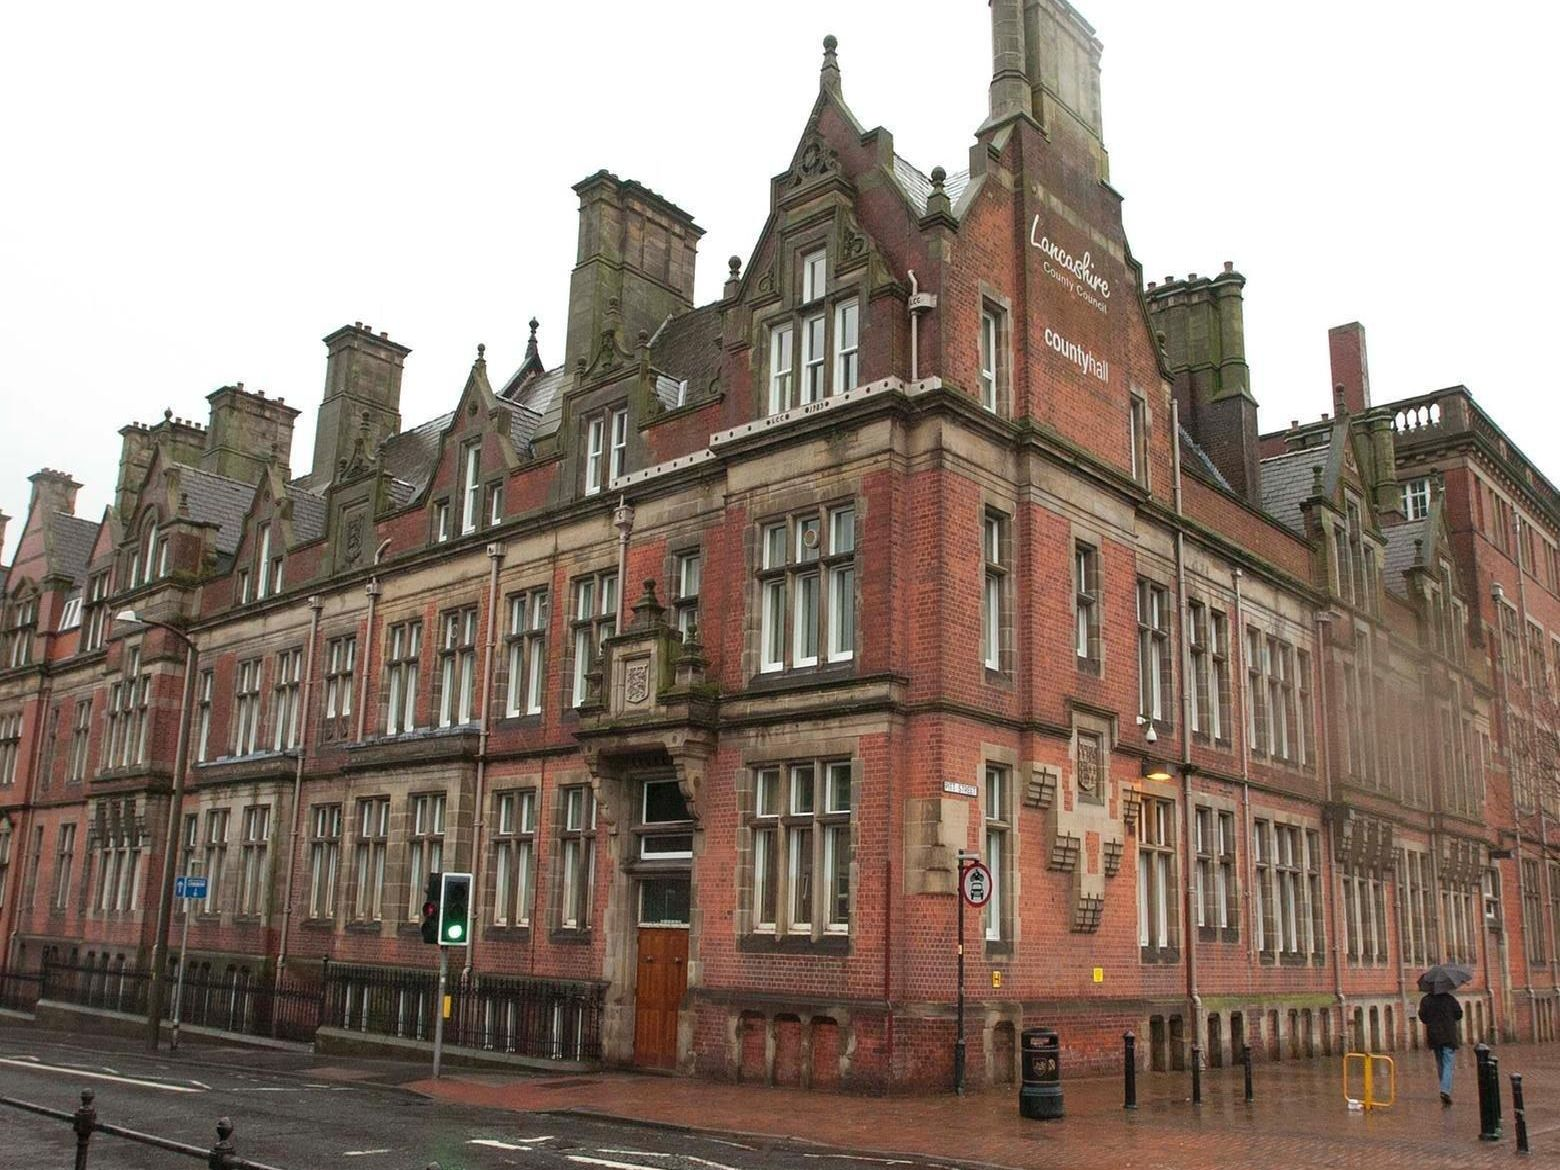 These are some of the jobs on offer at Lancashire County Council right now for Preston and South Ribble